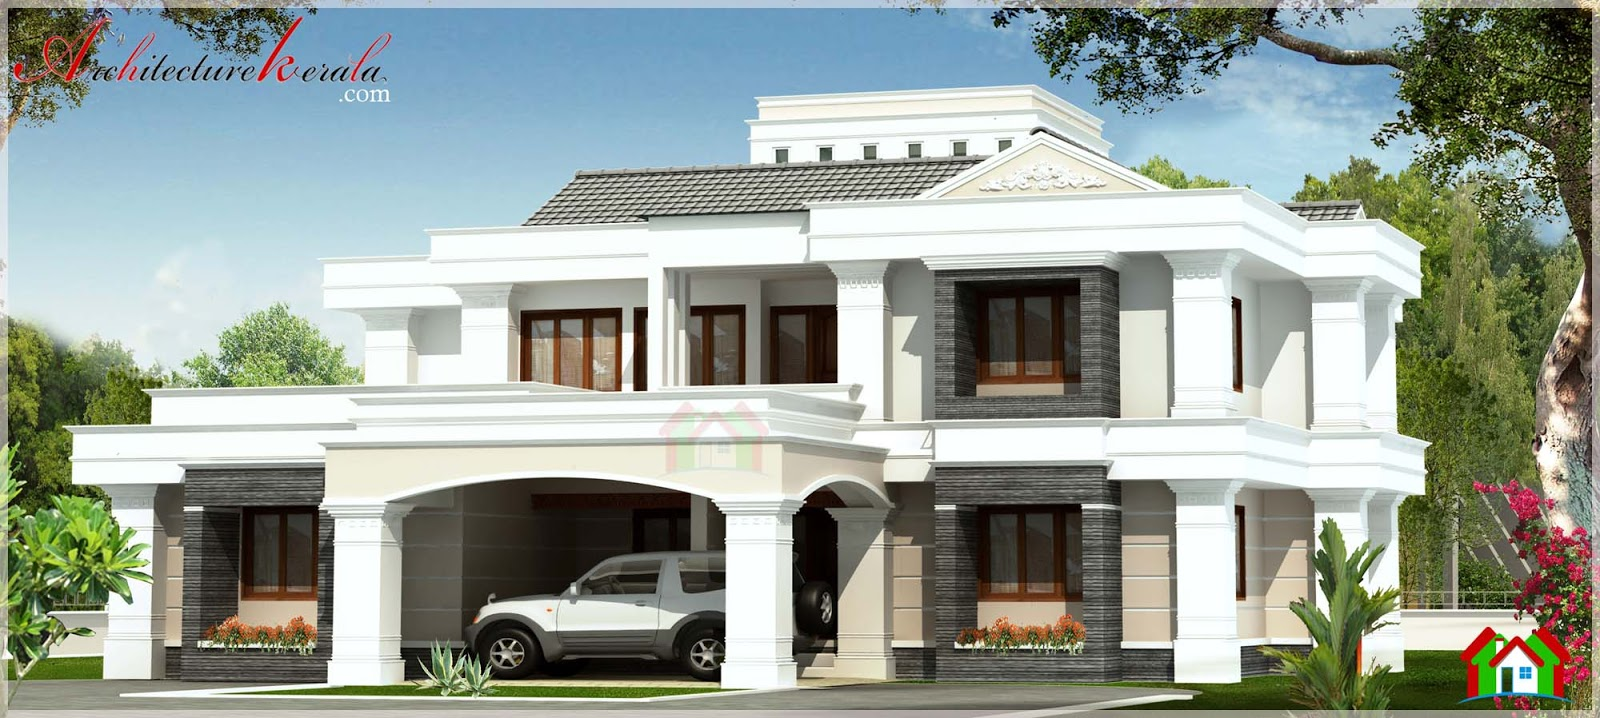 Contemporary style kerala house elevation architecture for Home architecture design kerala